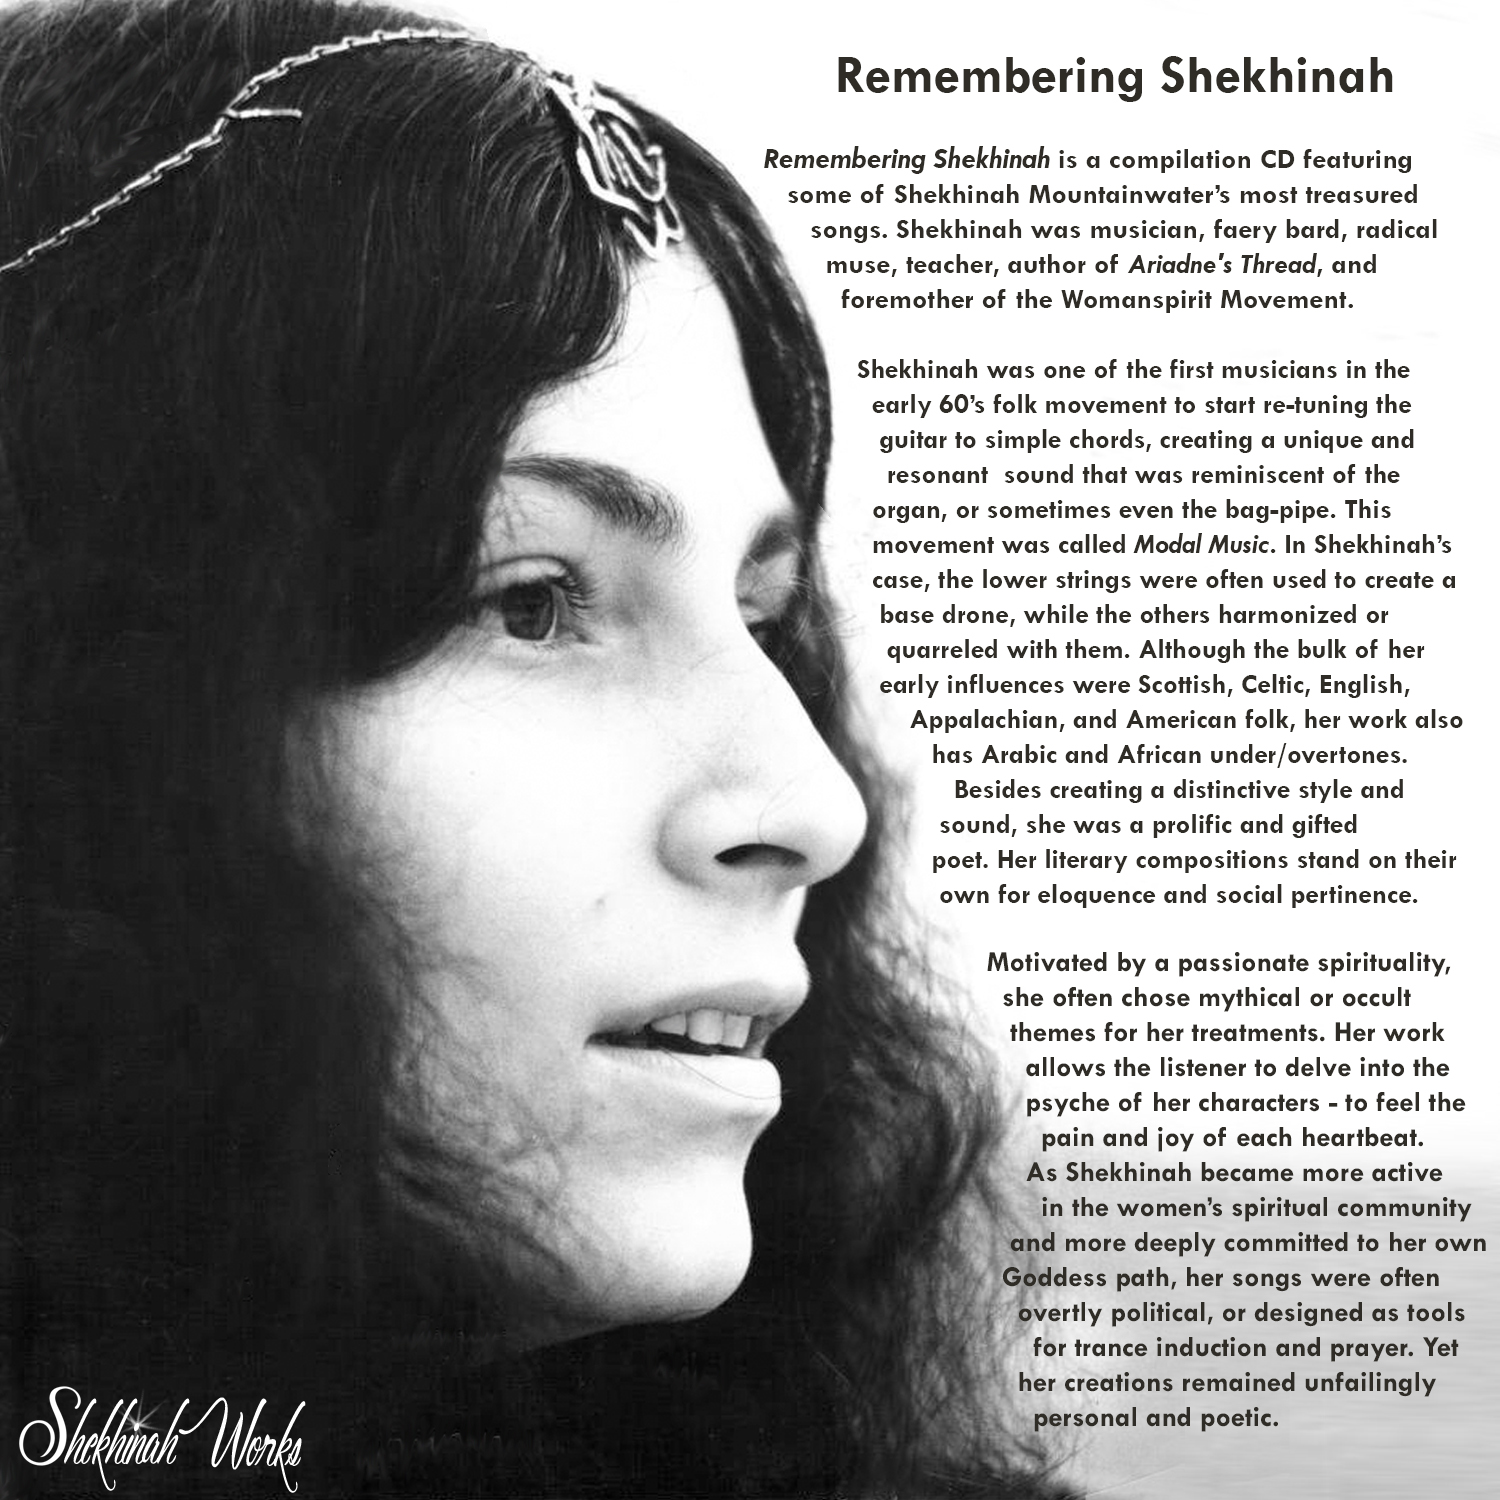 Remembering Shekhinah CD cover